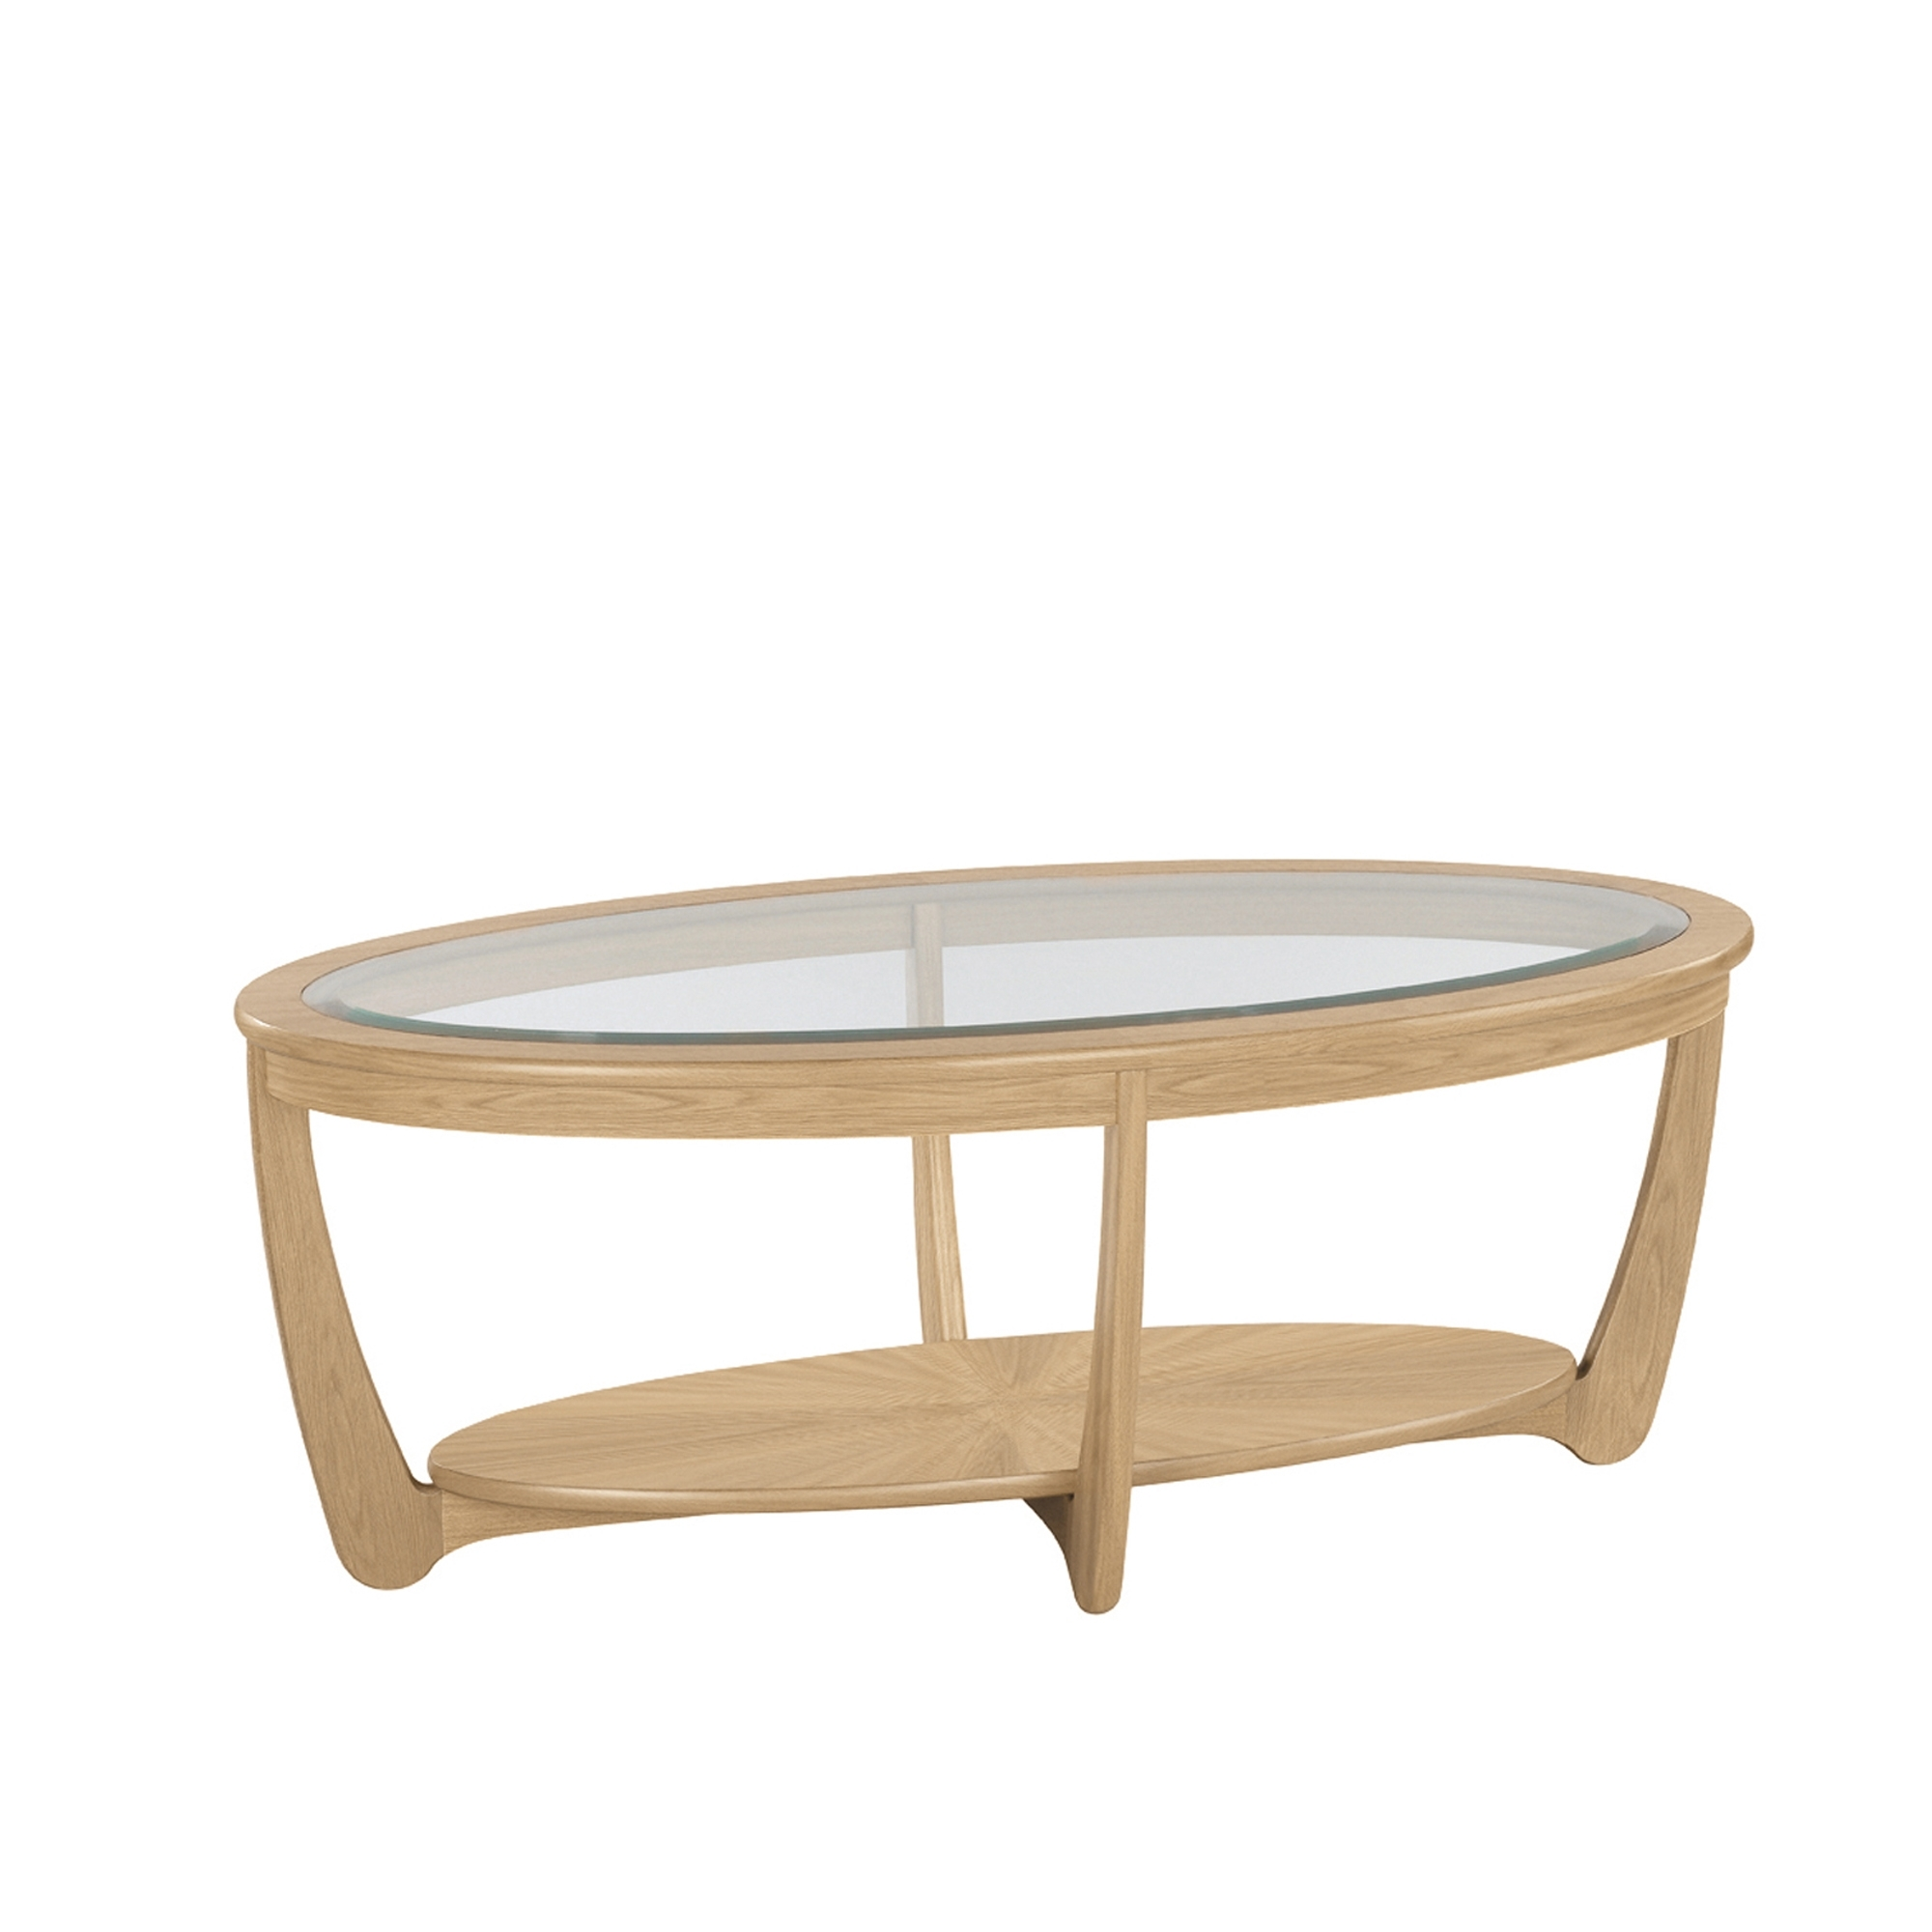 Nathan shades oak glass top oval coffee table coffee Glass coffee table tops